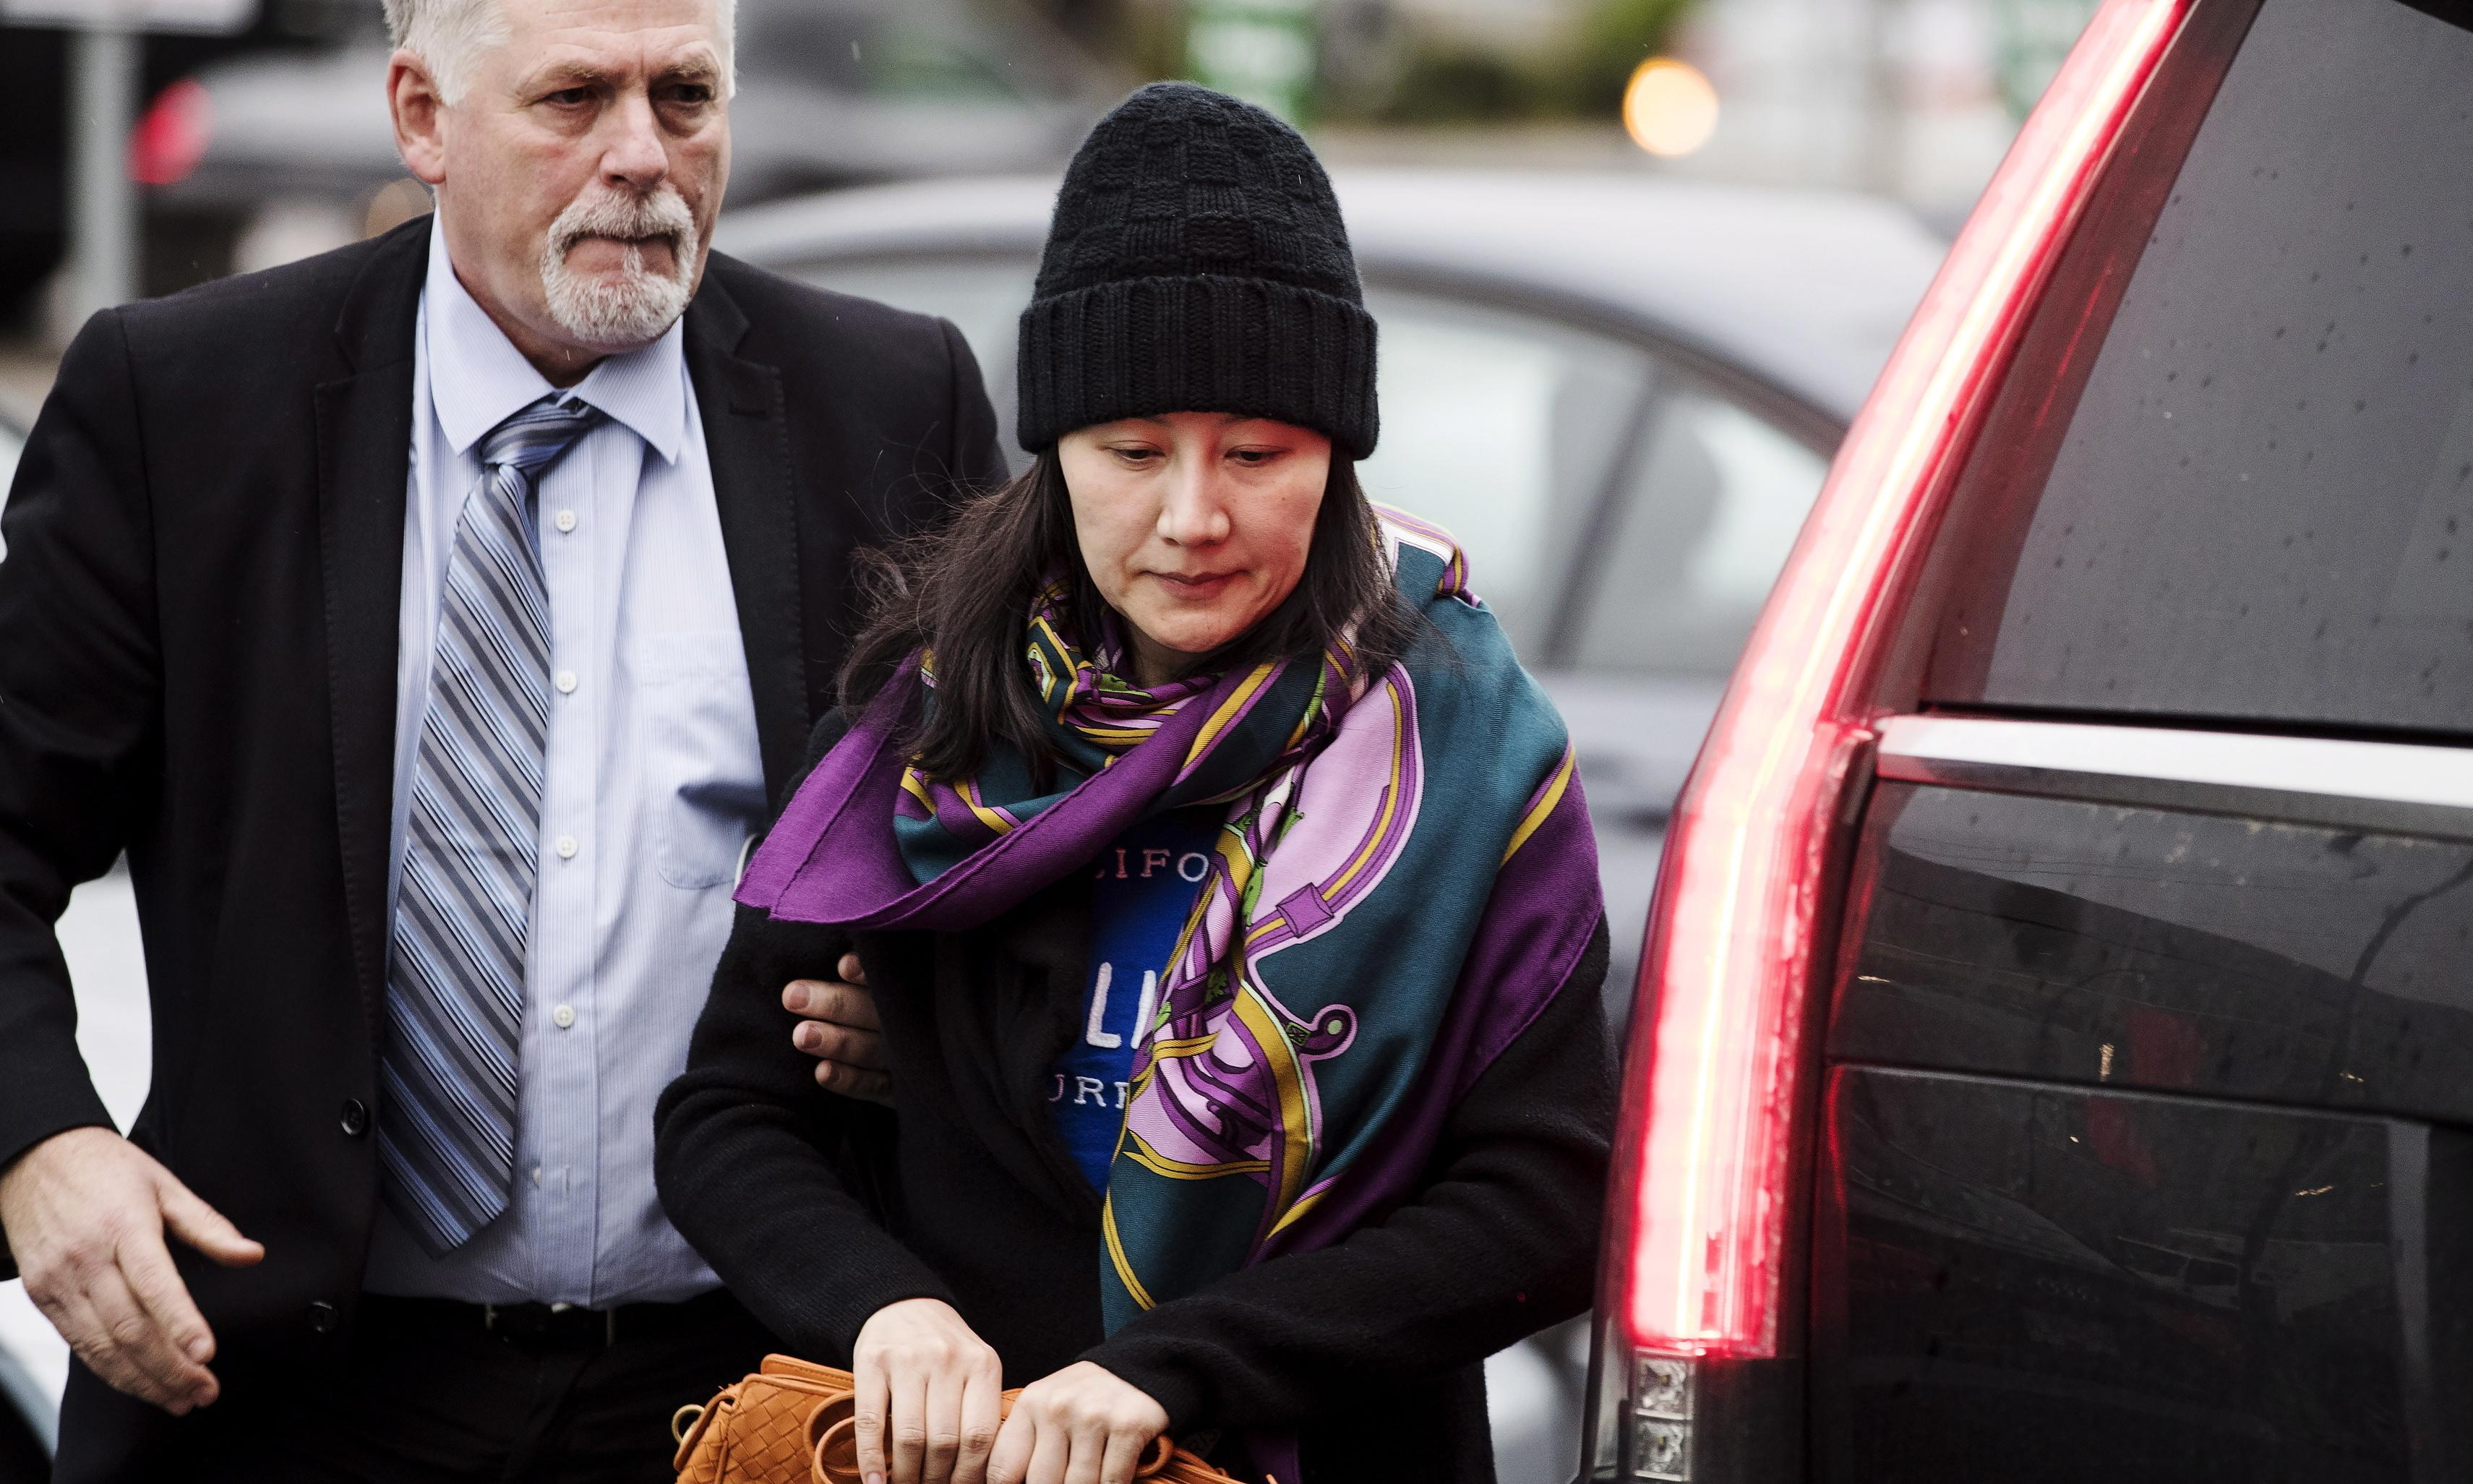 Trump's remarks could stymie US extradition of Huawei CFO from Canada